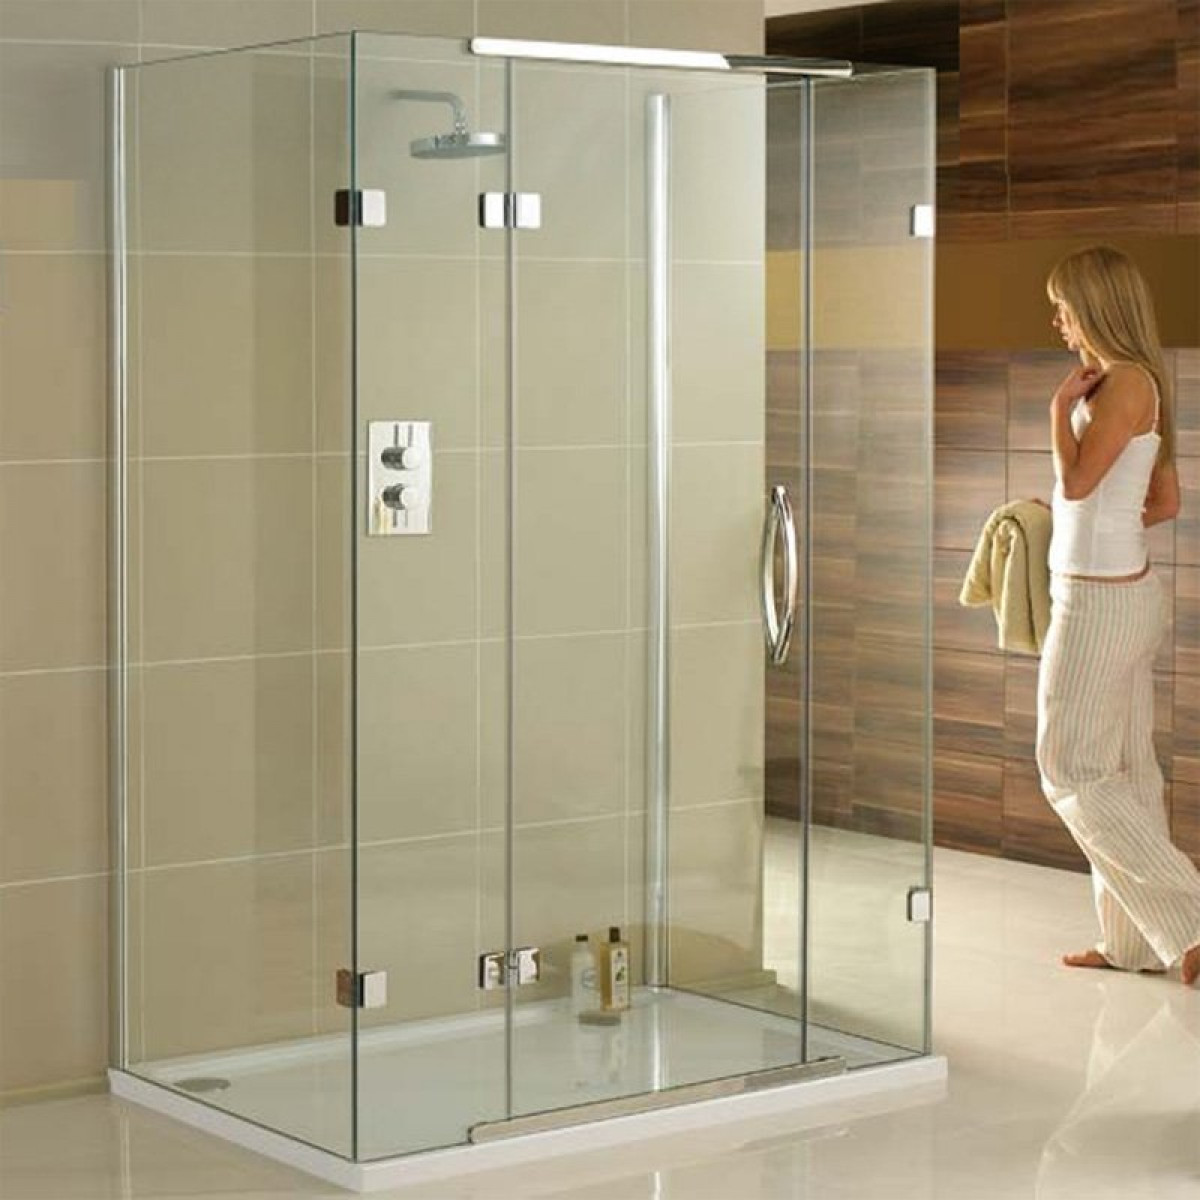 Aquadart 1400 x 800mm 3 Sided Shower Enclosure AQ1037